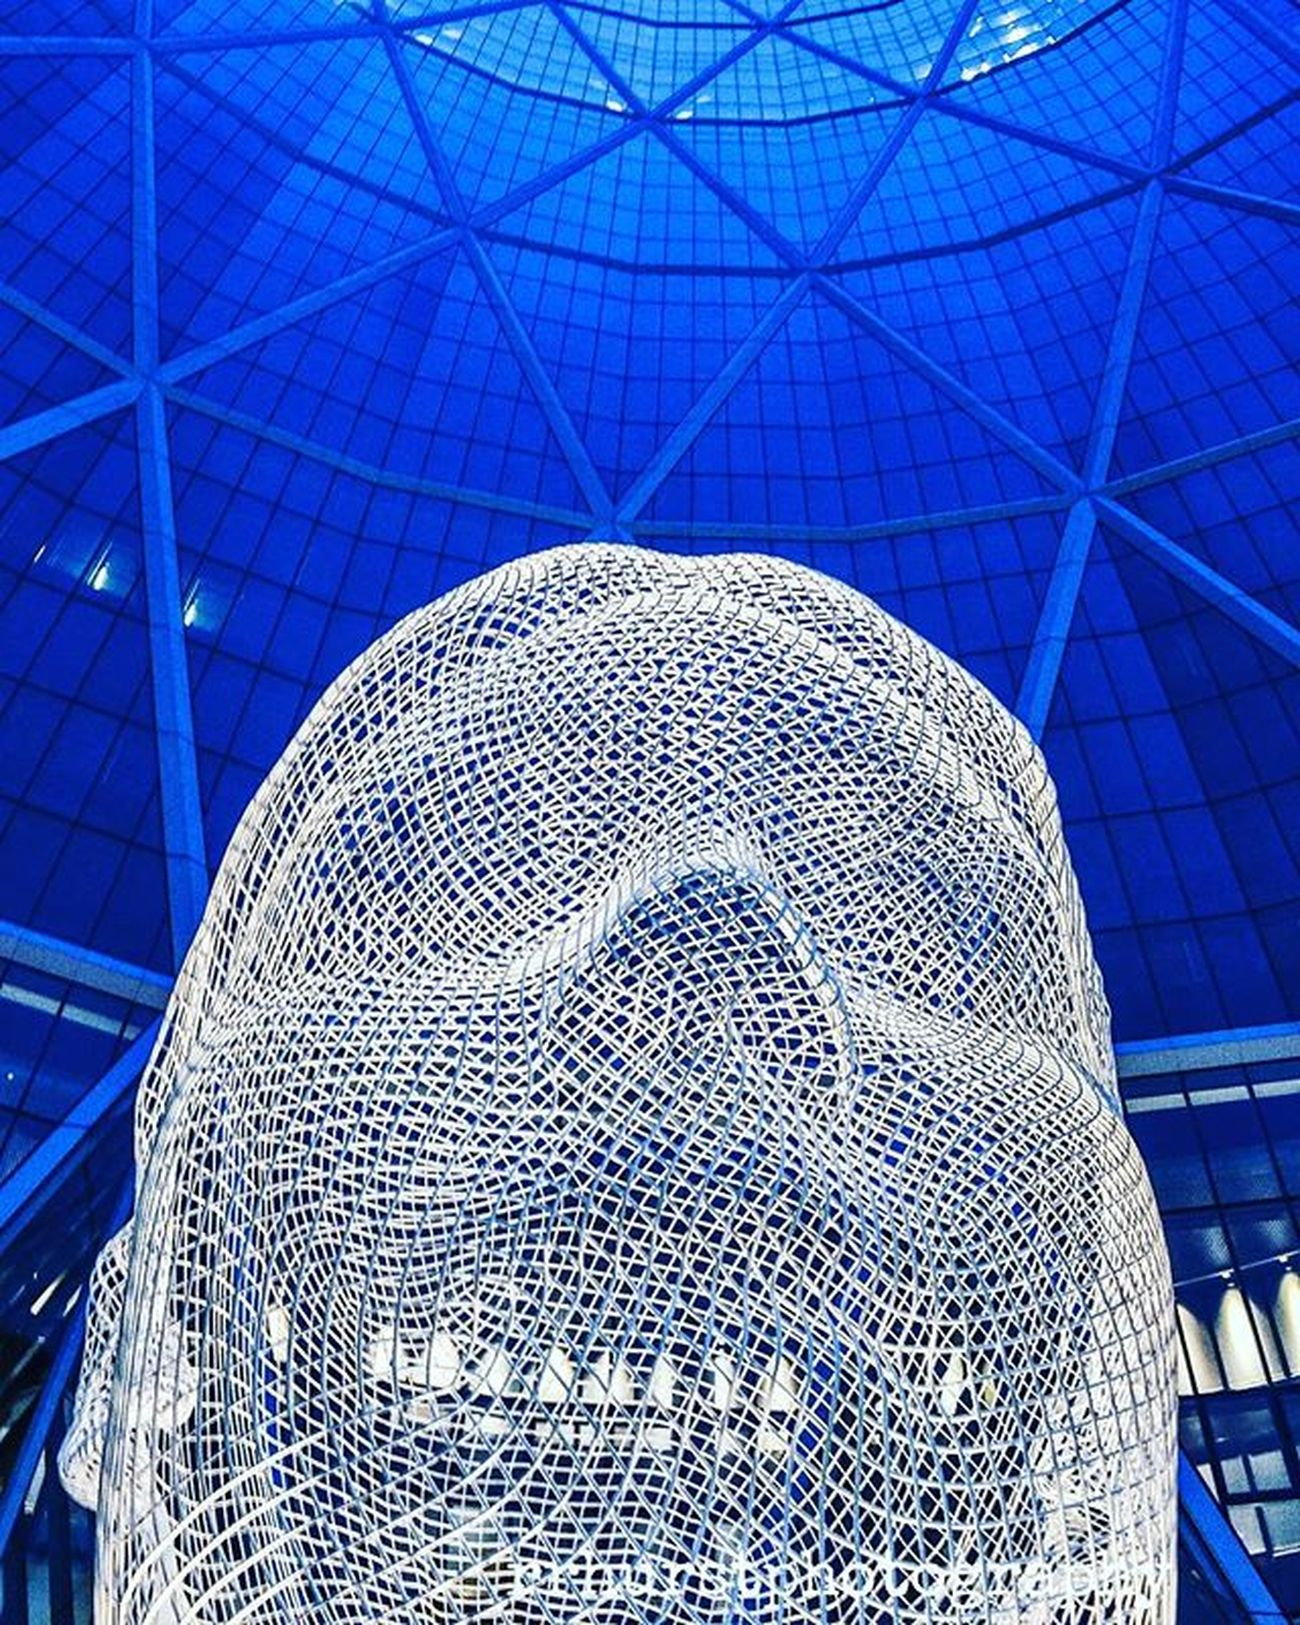 The Bow building's head in downtown Calgary revisited. @outdoorphotomag @photographymagazine @PhotographyWeek @profoto_canada Calgaryphotography Calgary Alberta Eastvillagecalgary Art HEAD Bowbuildingcalgary Beautiful Blue Glass Skyscraper Modern Outdoorphotography Getoutside OutsideIsFree Outdoorlighting Southernontariophotographer Nikonphotographers Calgarylife Digitalphotography Nofilter Westliving Bigcitylife Albertaartscene Nikonphotography prophotographer nikond7000 rrhurstphotography artsburlington latowphotographersguild